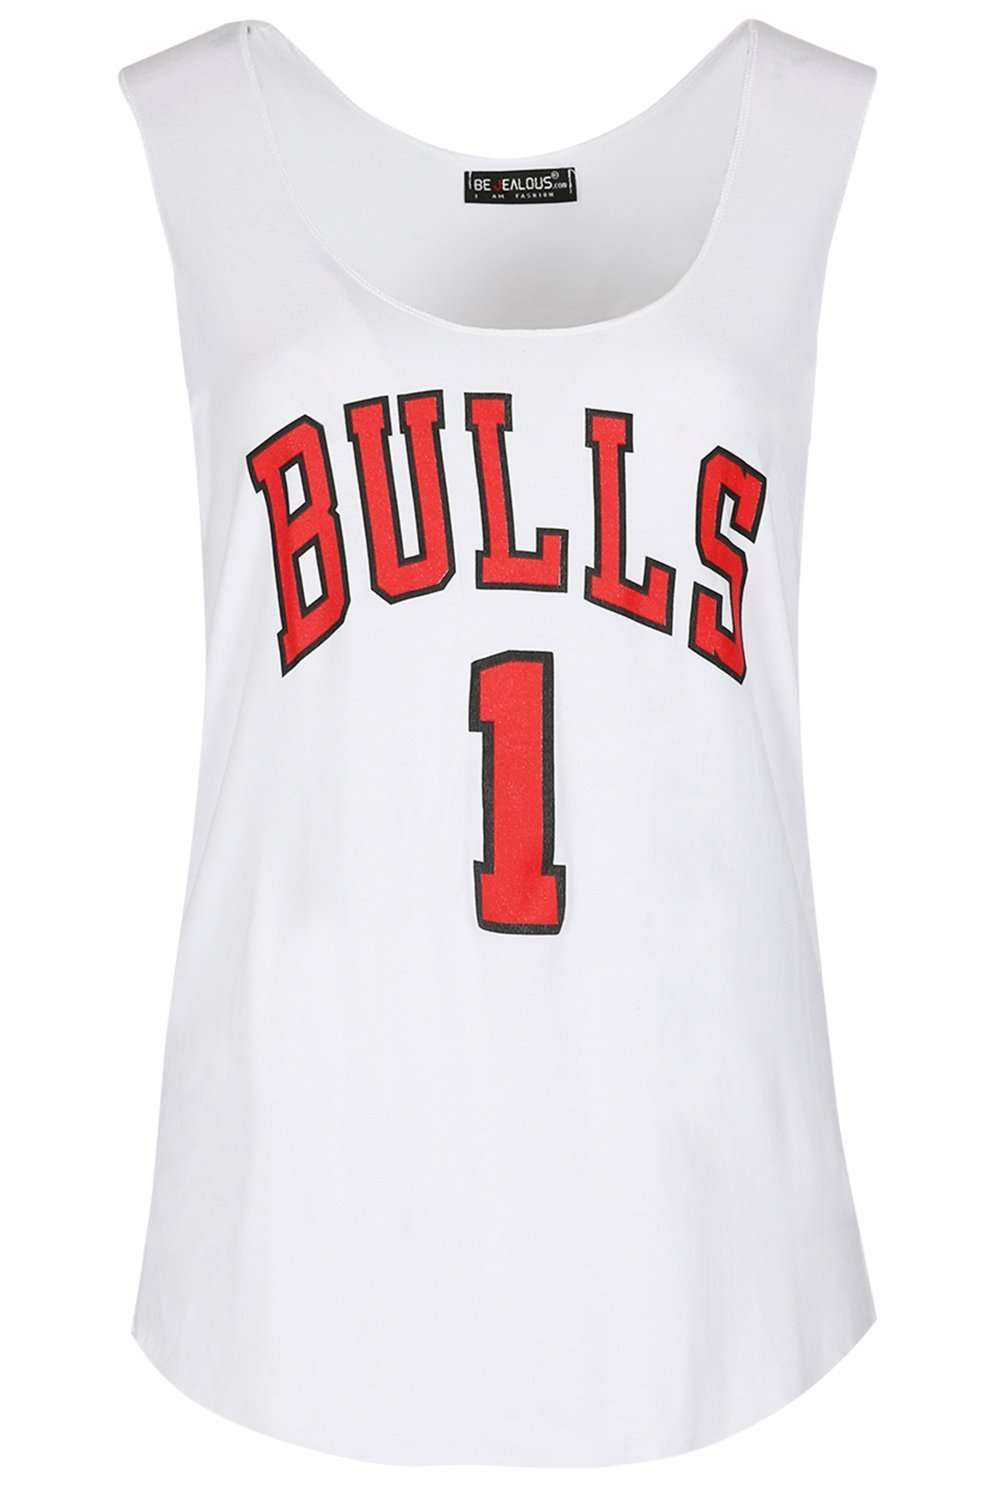 Netty Raw Edge Bulls Slogan Print Vest Top - bejealous-com